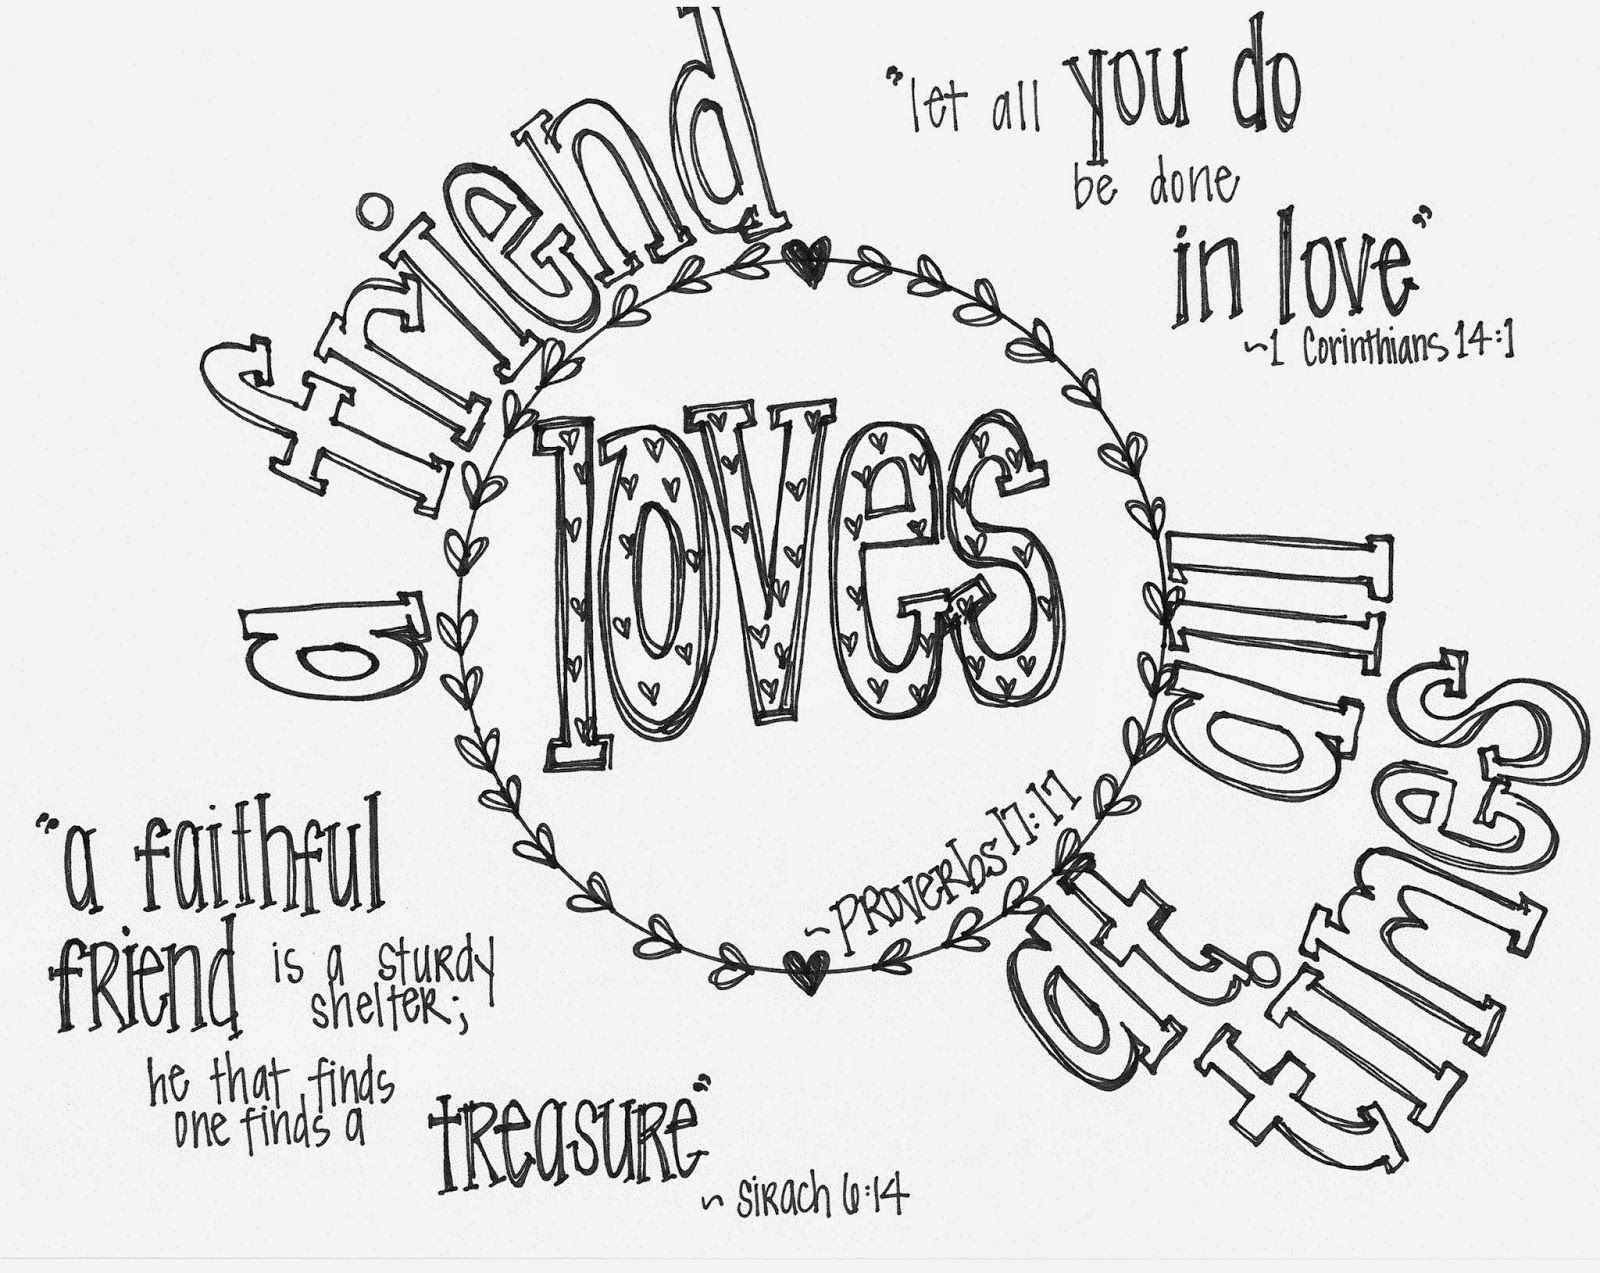 Free Printable Coloring Page With Bible Verses A Friend Loves At All Times